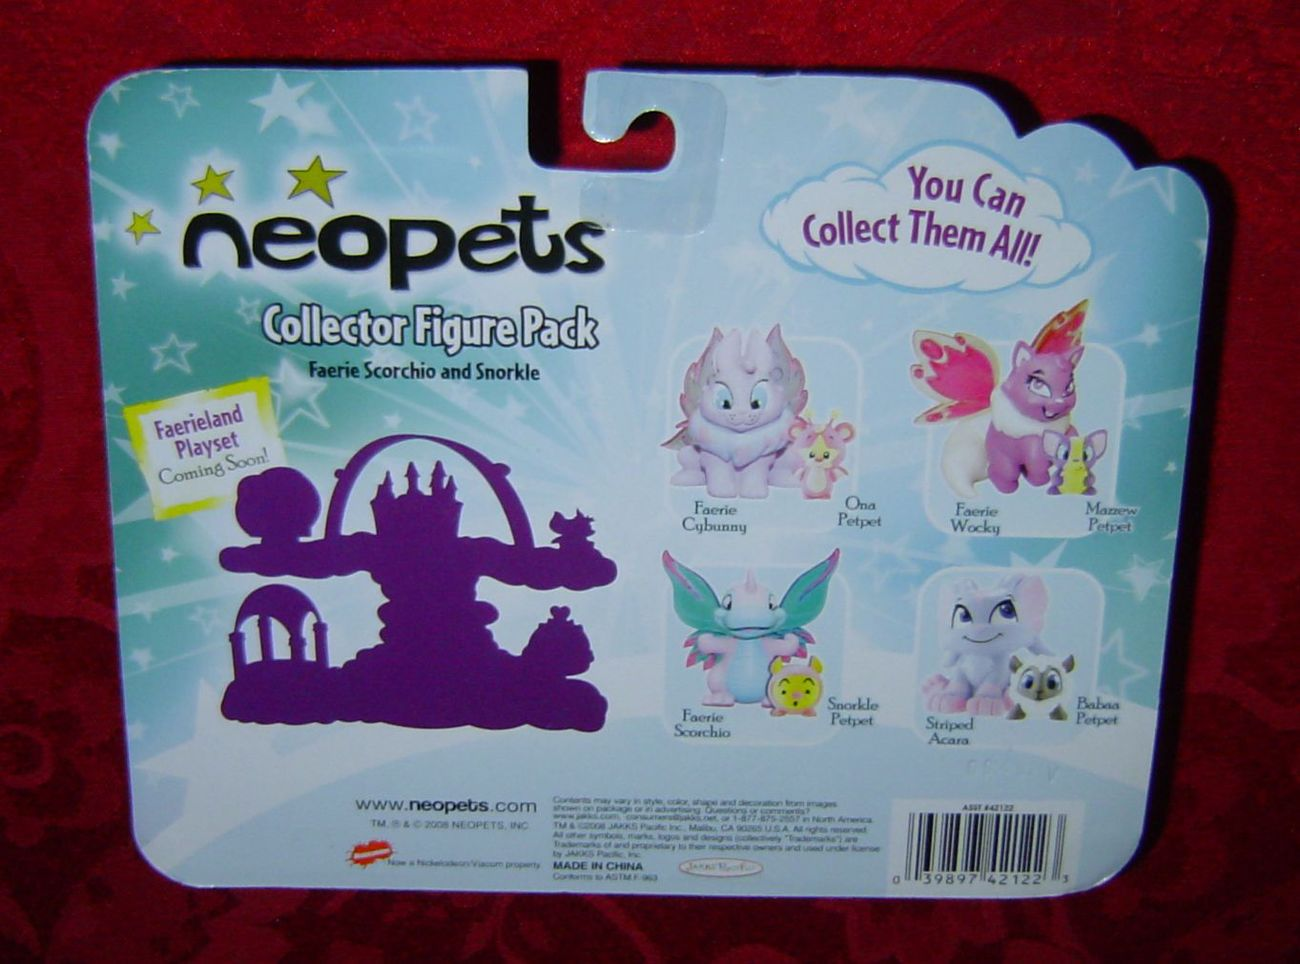 Neopets Collector Figure Pack Faerie Scorchio and Snorkle series 1 2008